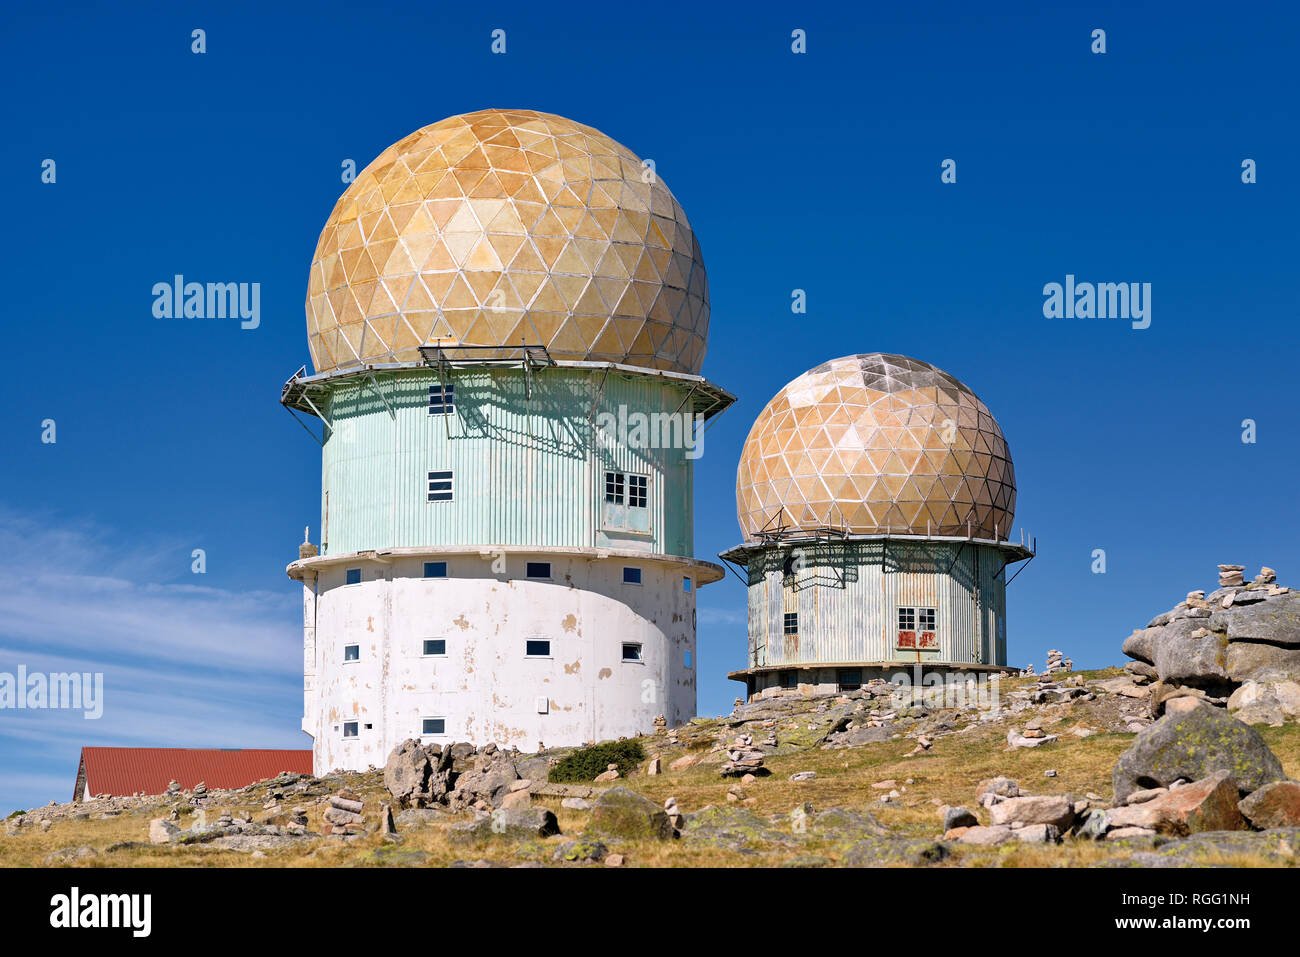 Transmitting towers with golden cupola - Stock Image